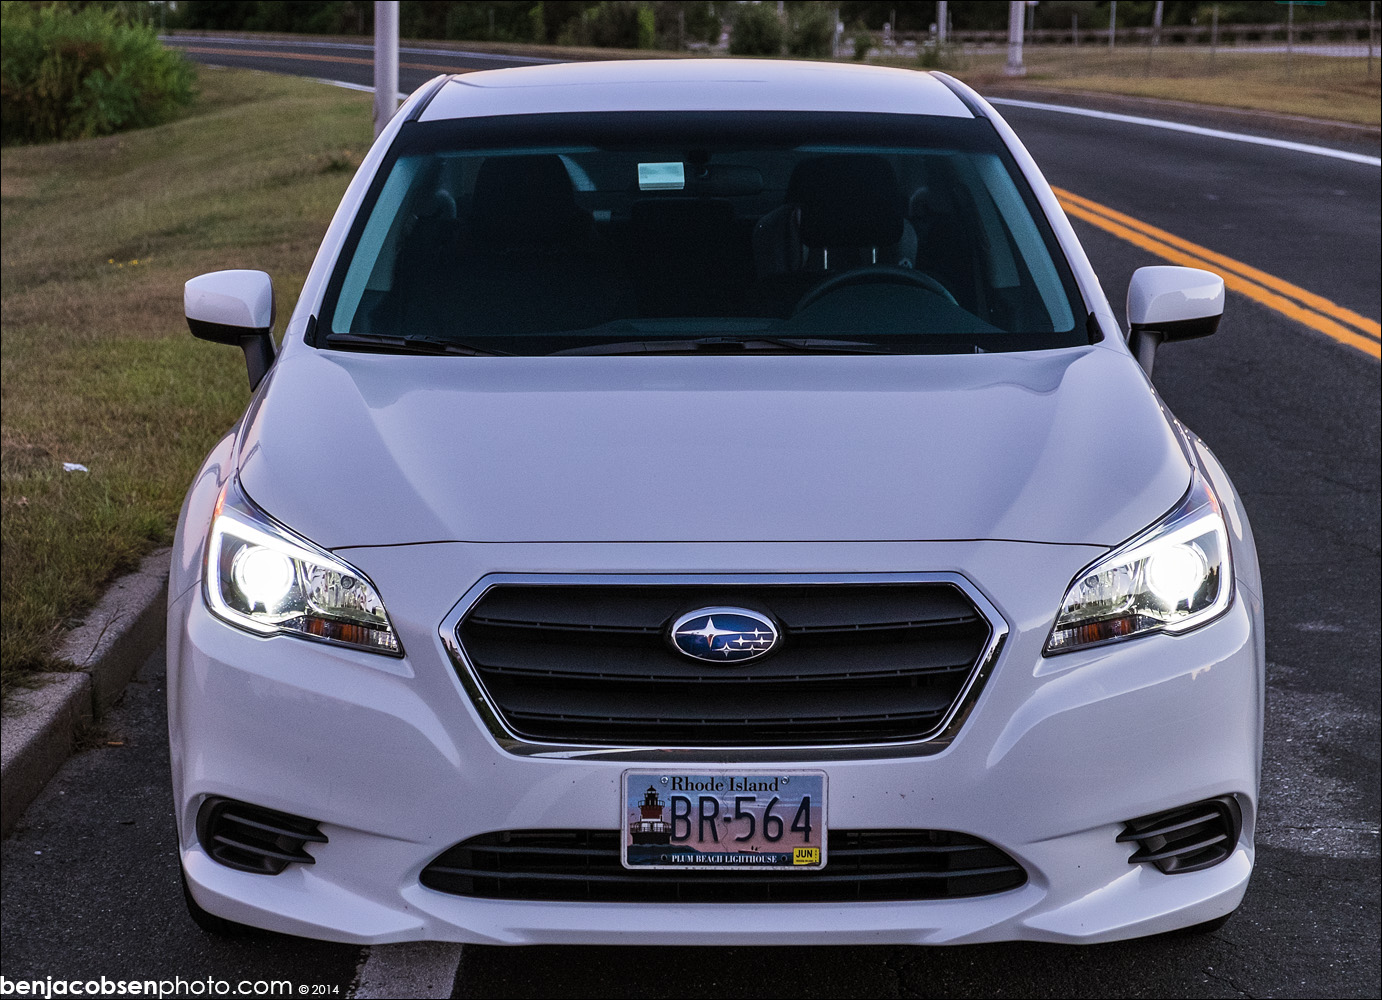 Pics Photos - Thread 2015 Subaru Legacy And Outback Spied For The